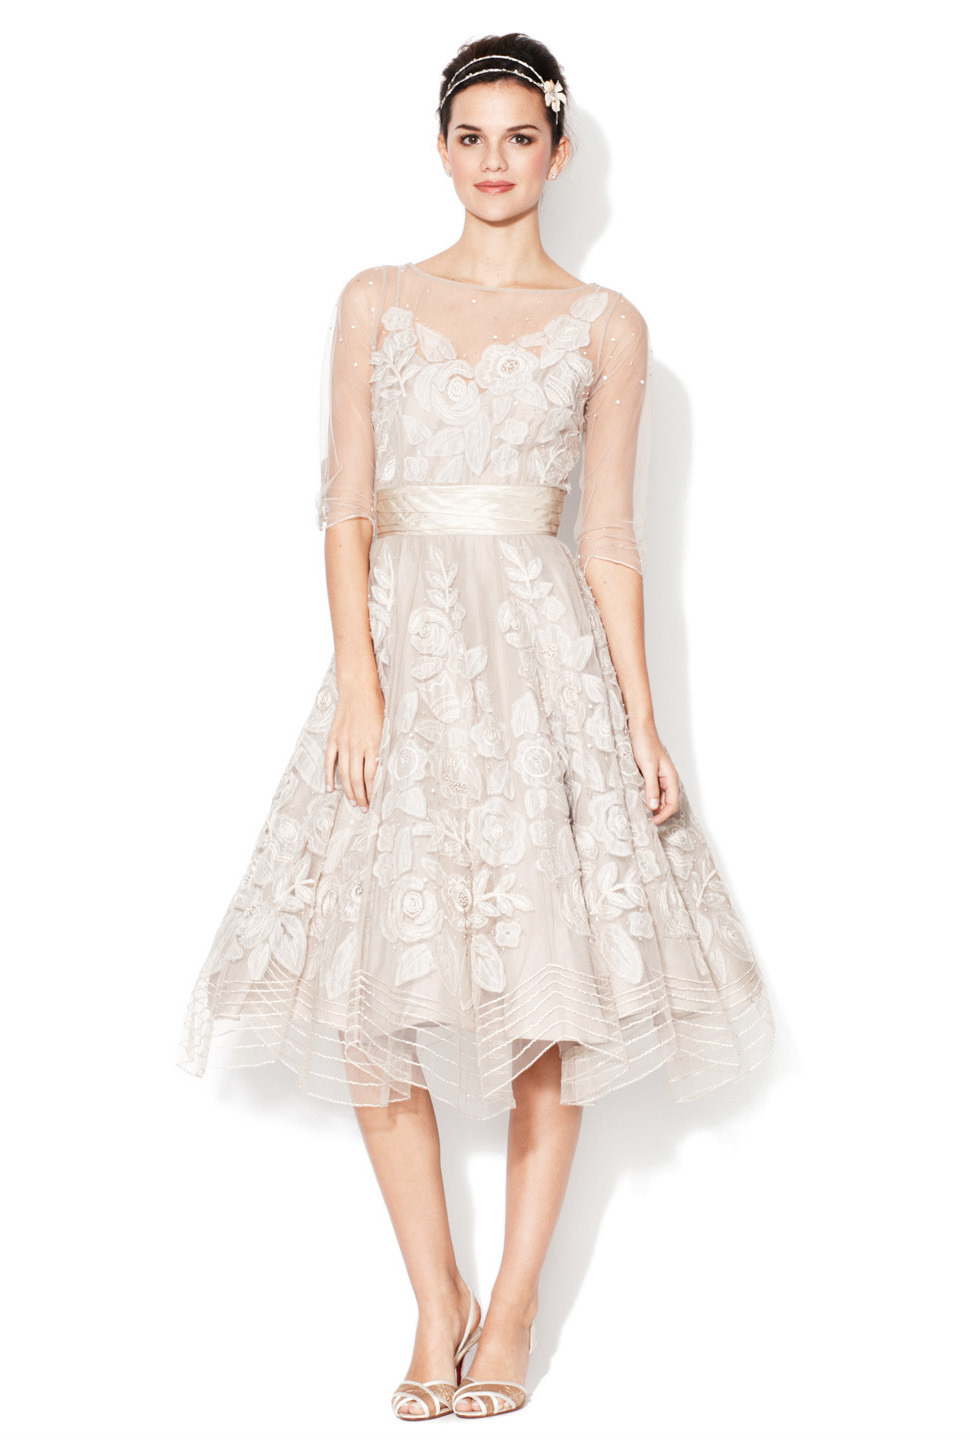 [Tulle Era Dress by BHLDN]